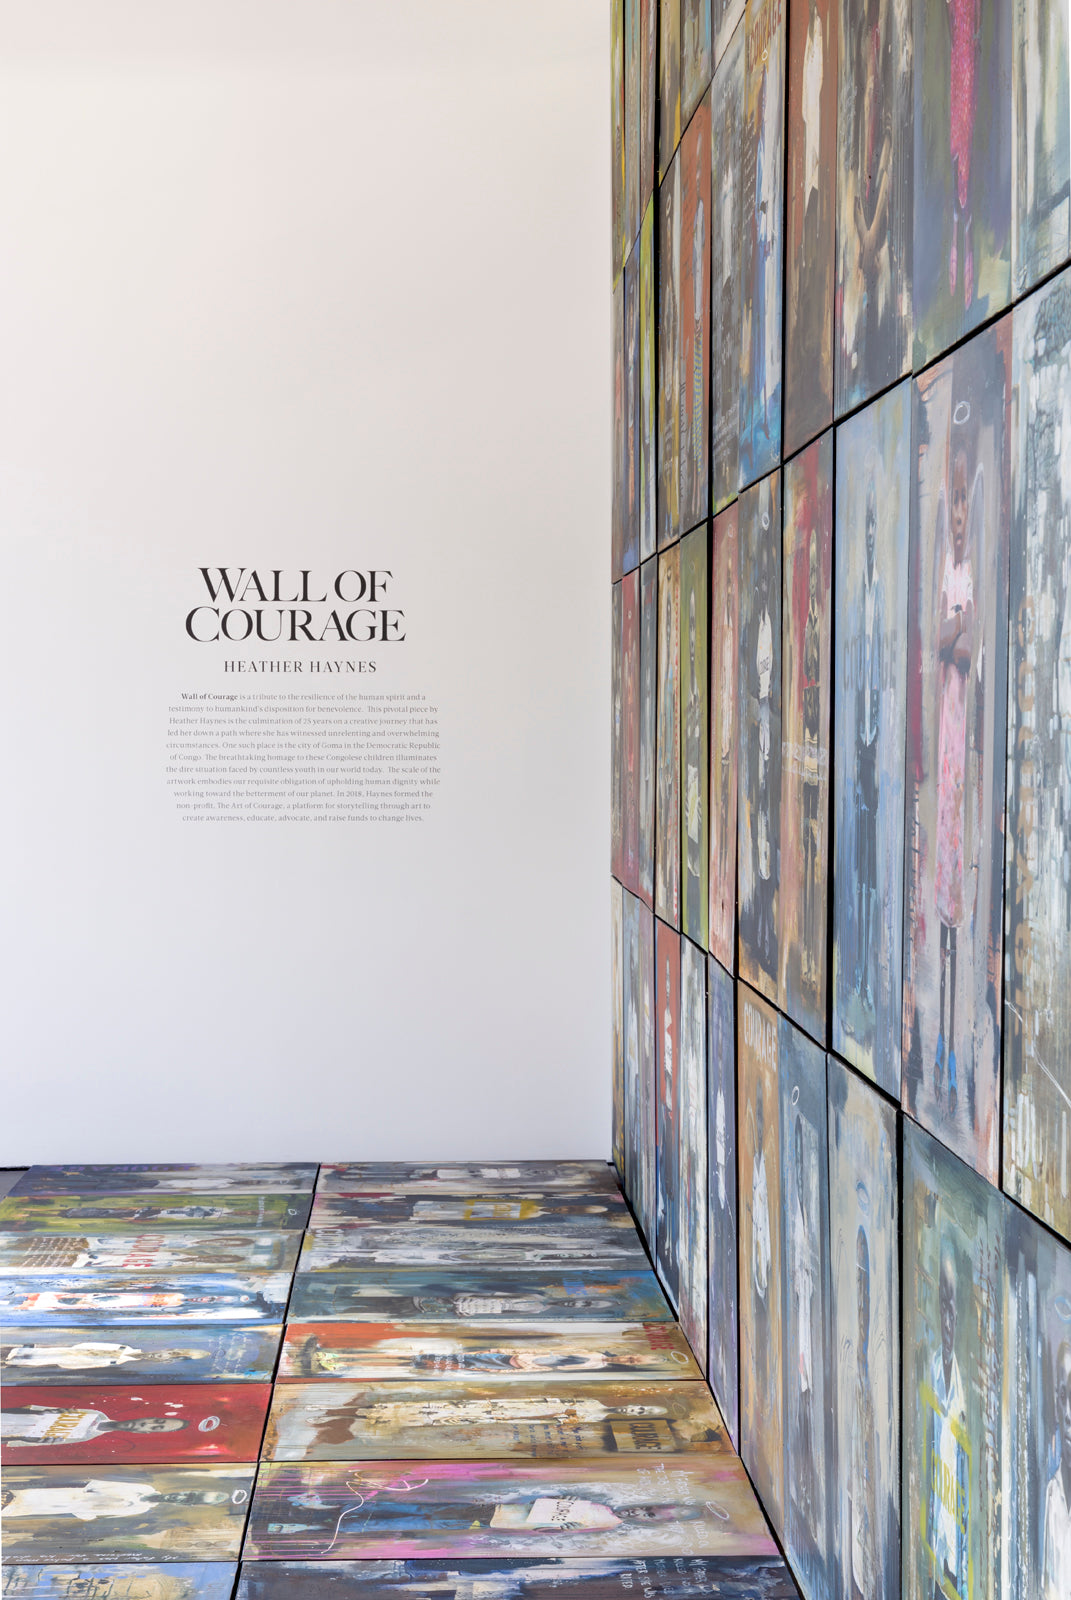 Wall of Courage: Mirimo